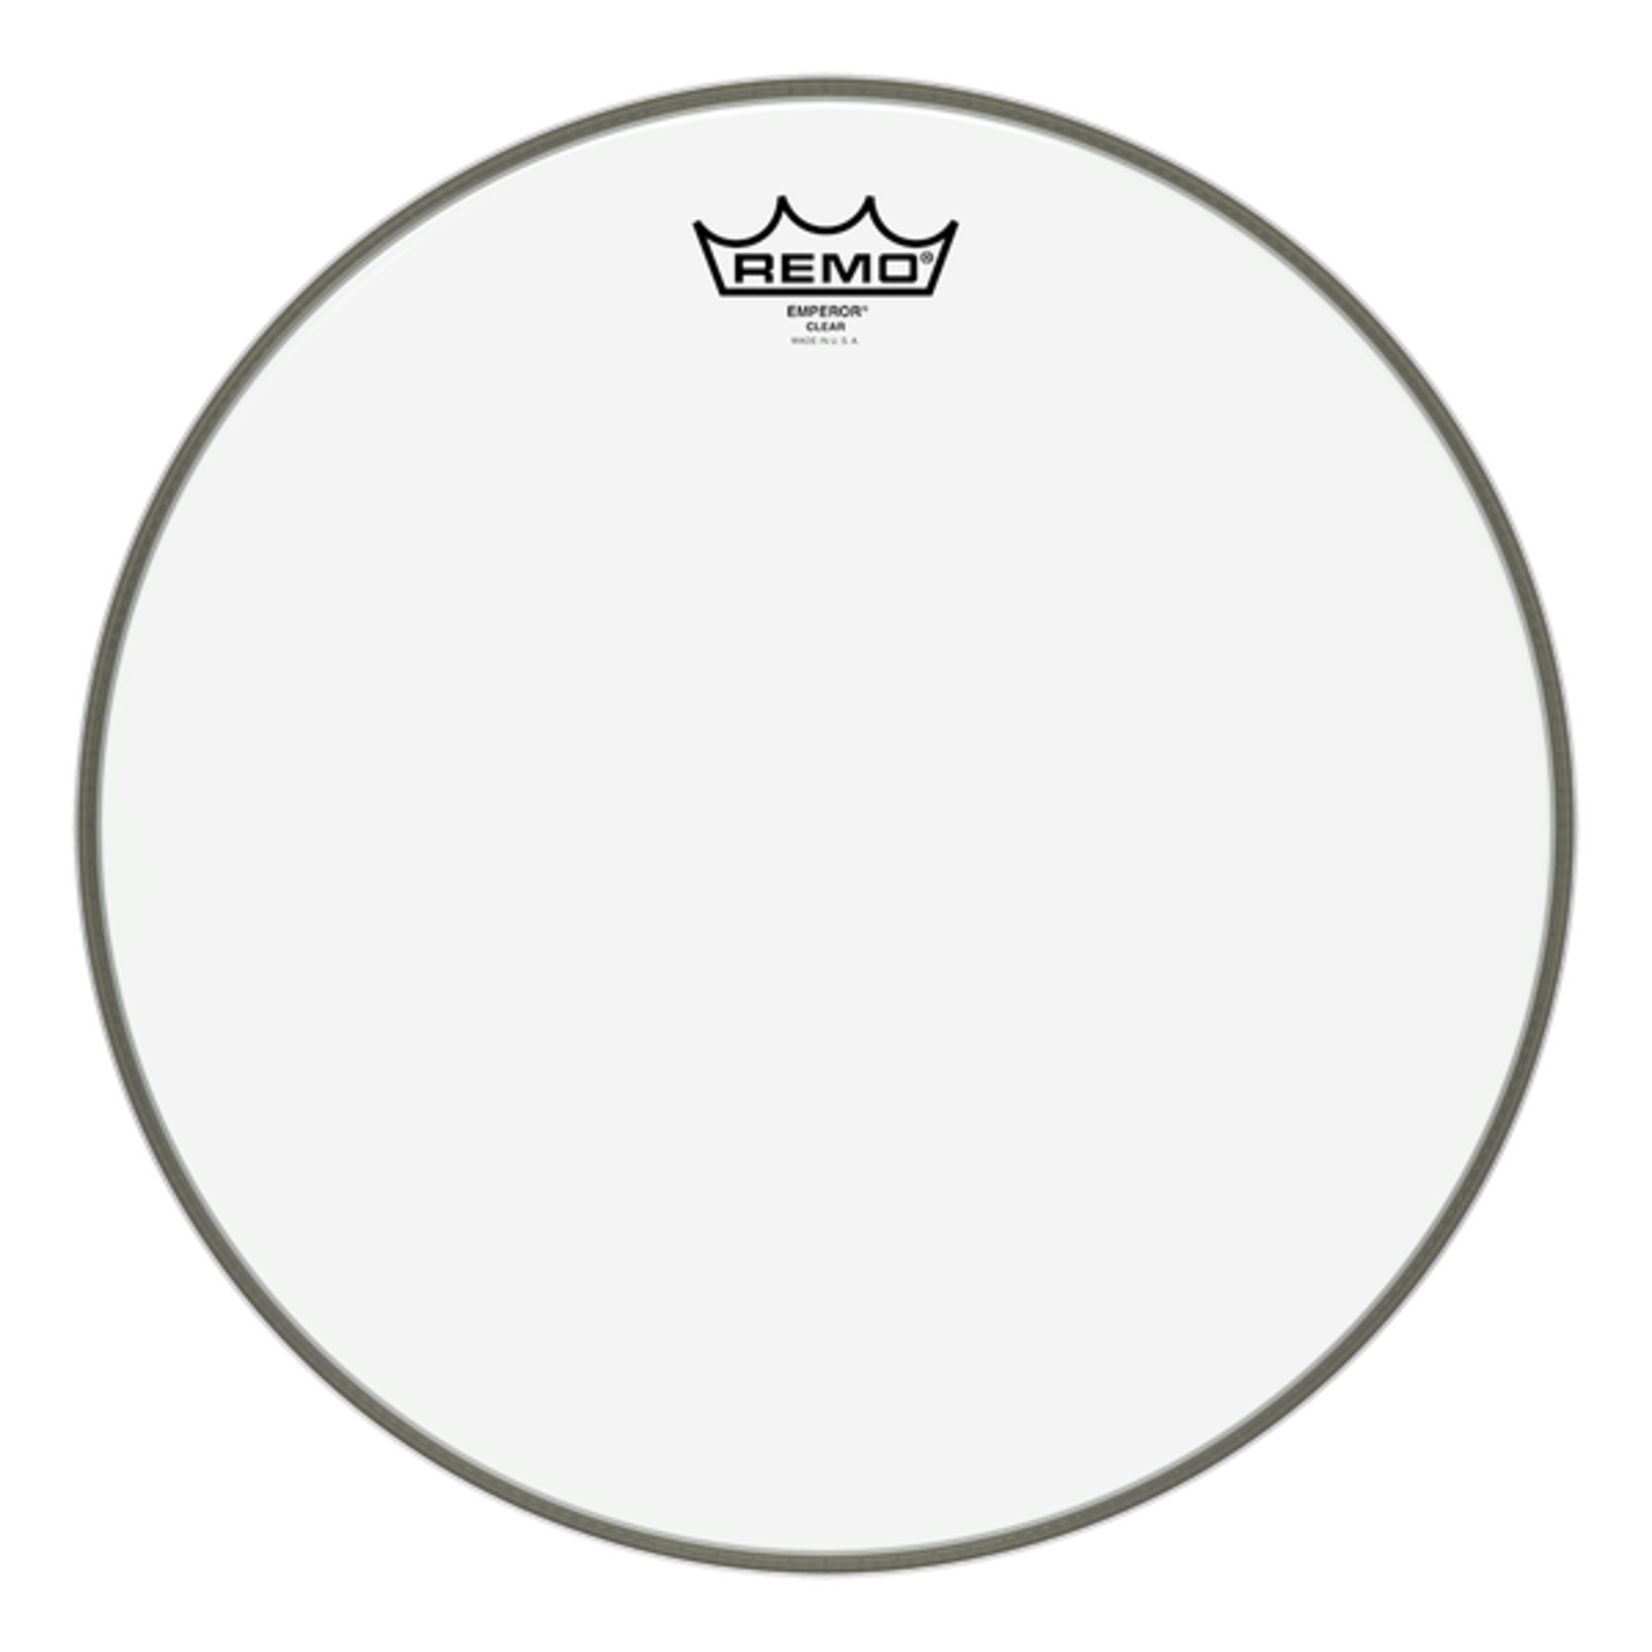 Remo Remo Clear Emperor Bass Drum